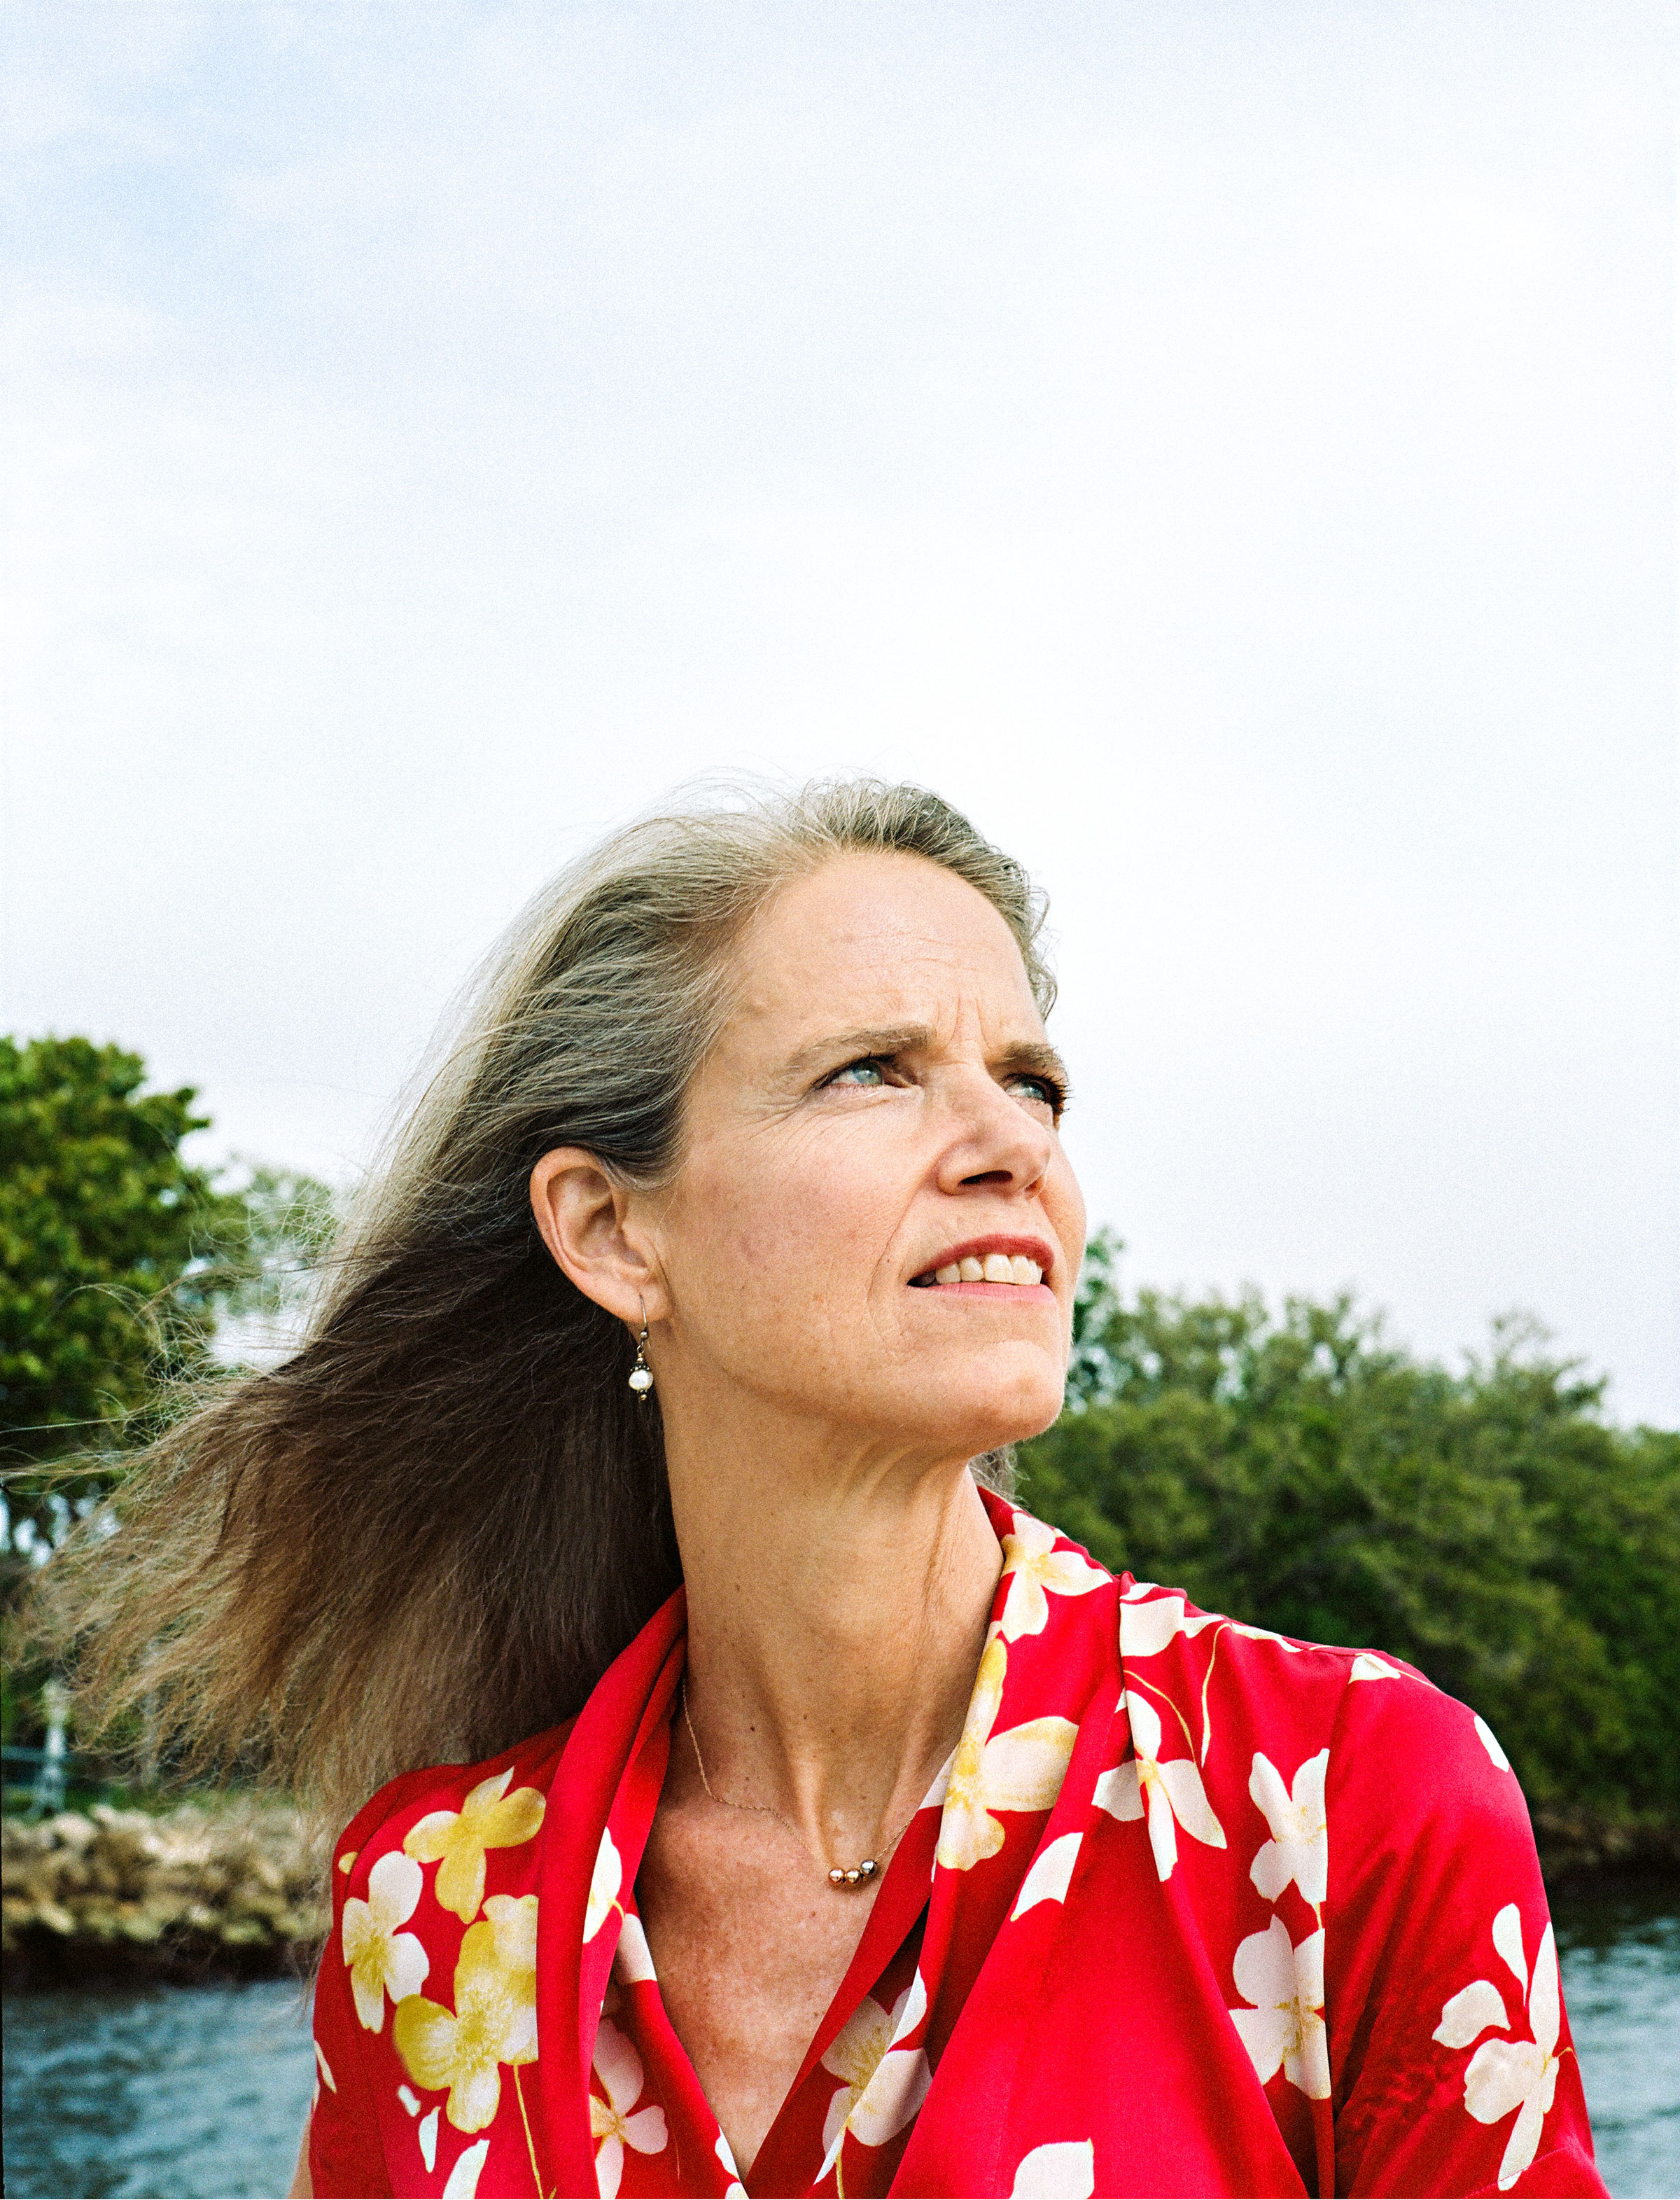 Jane Gilbert, Miami's interim Chief Heat Officer and Resilience Consultant, in the city's Morningside Park on June 18, 2021.